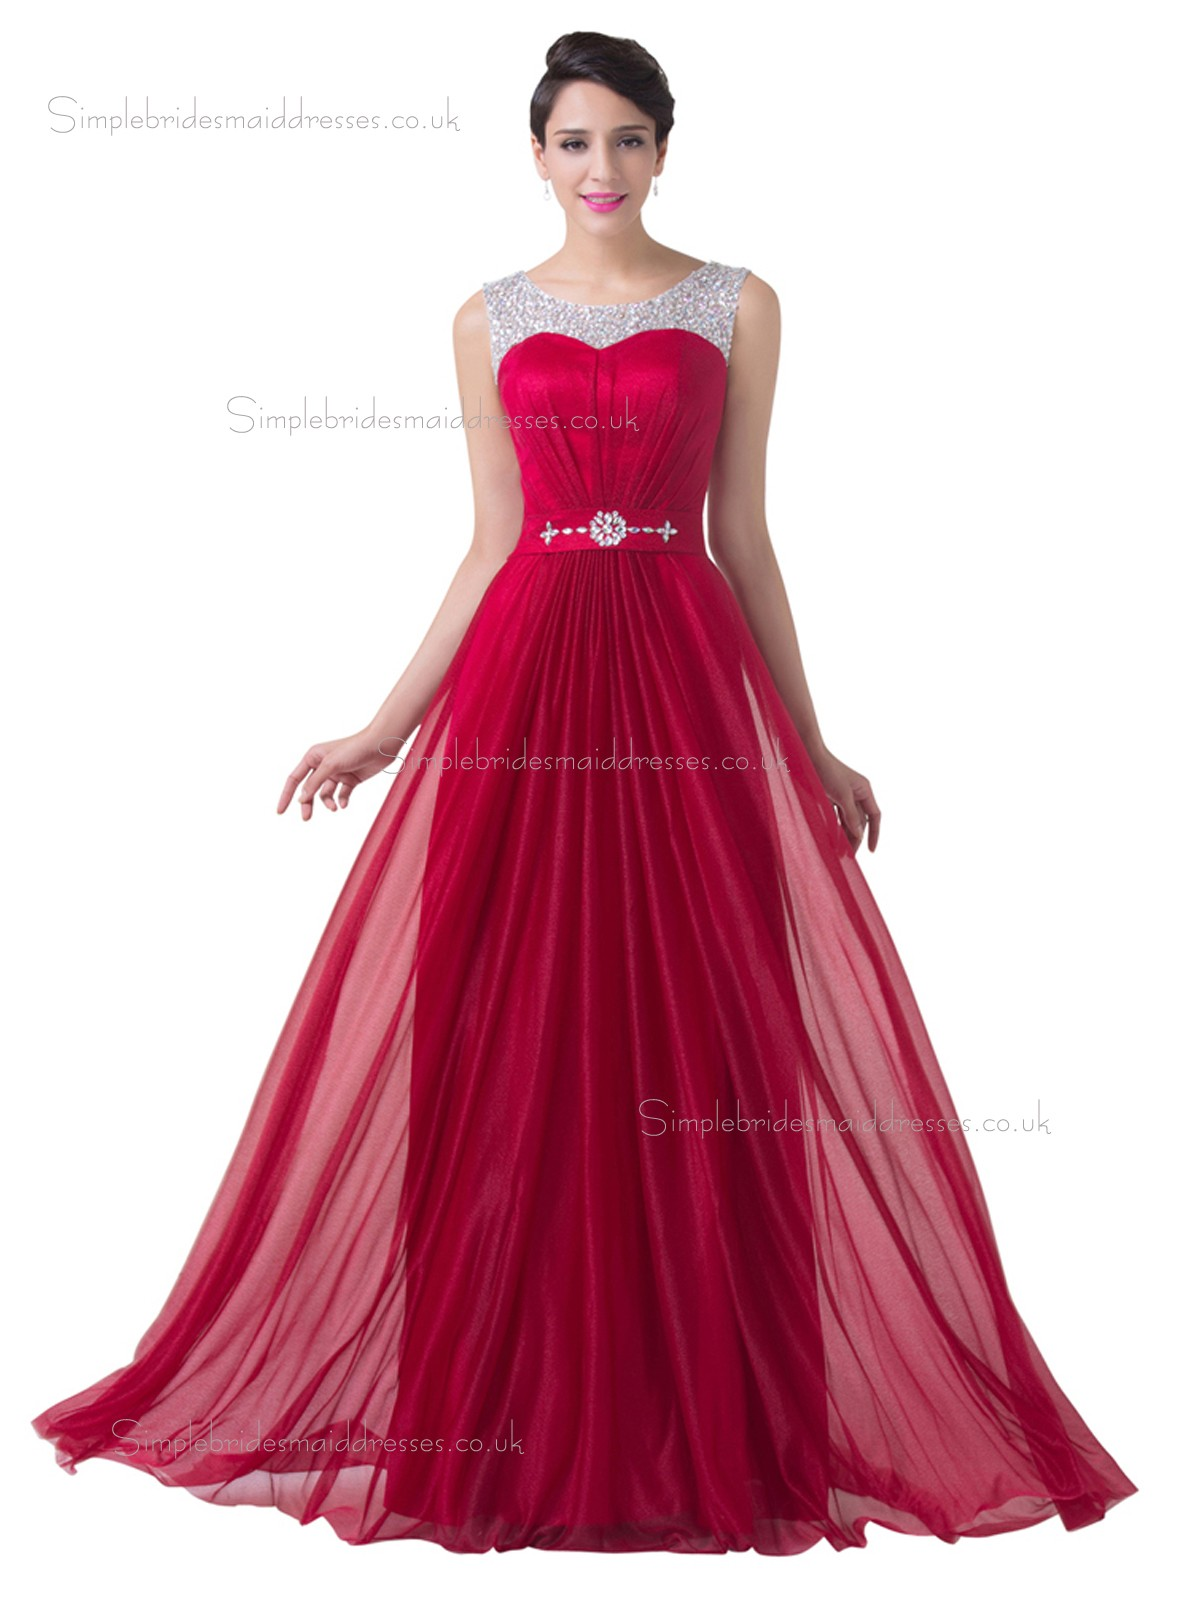 Chiffon bridesmaid dresses uk cheap chiffon bridesmaid dresses uk elegant red chiffon floor length long bridesmaid dress ombrellifo Image collections